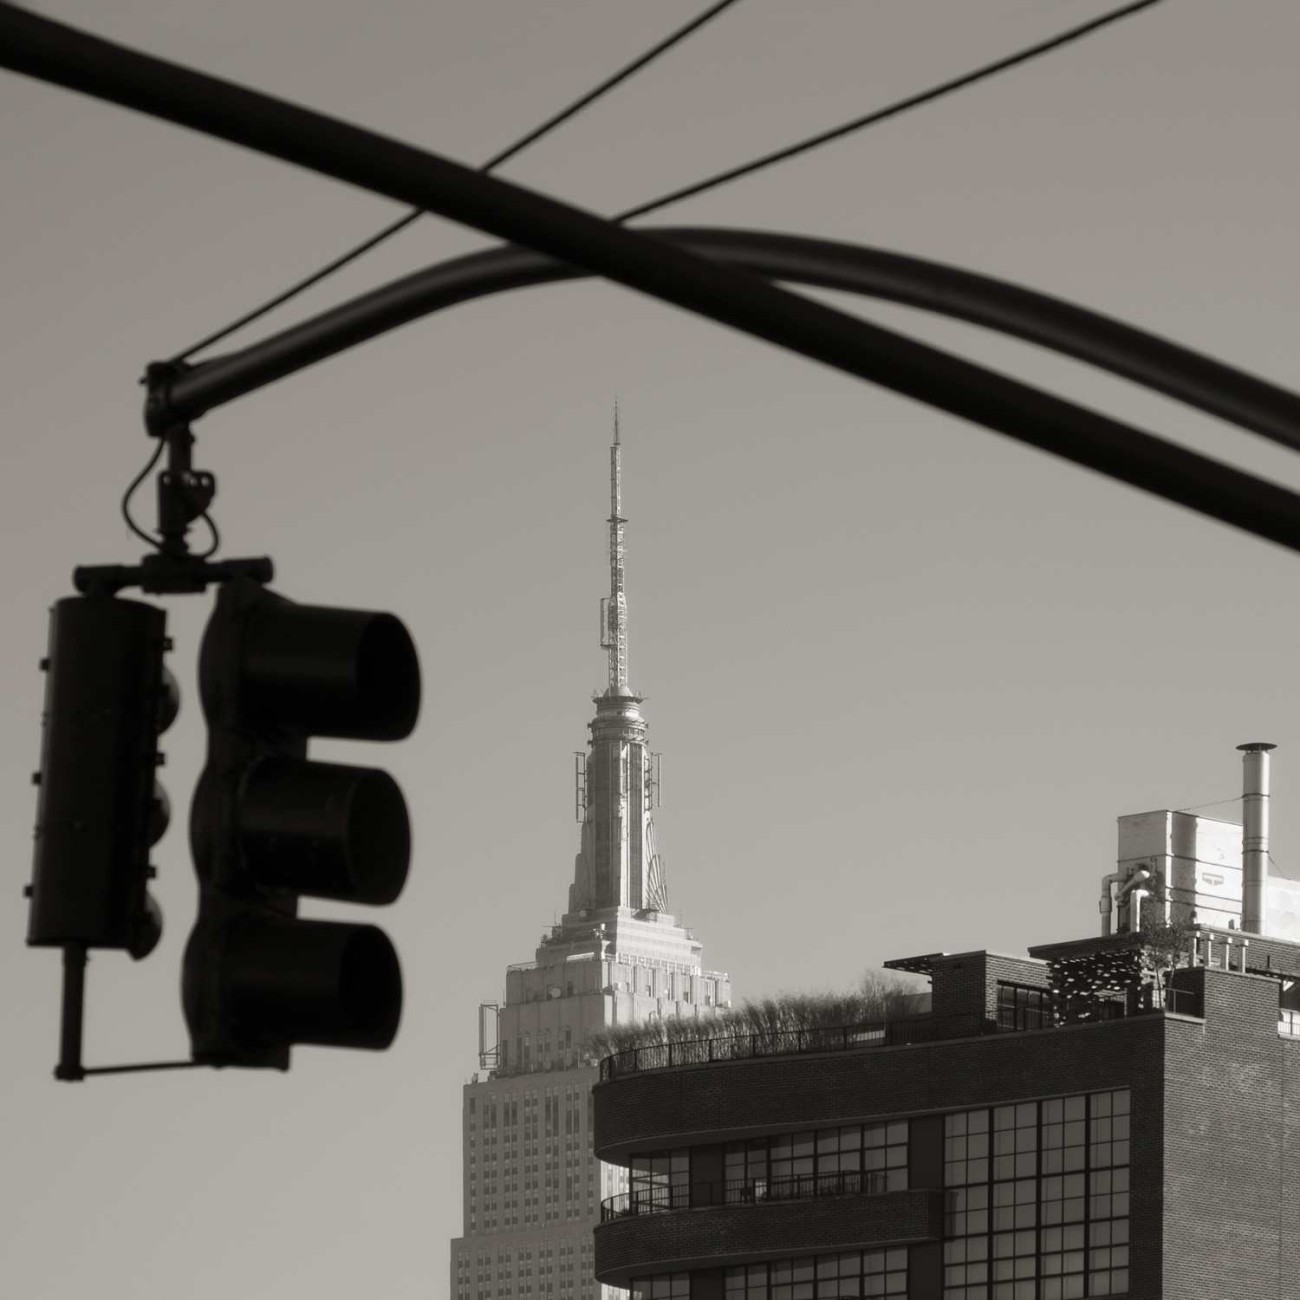 Empire State Building and traffic light silhouette, New York, 20